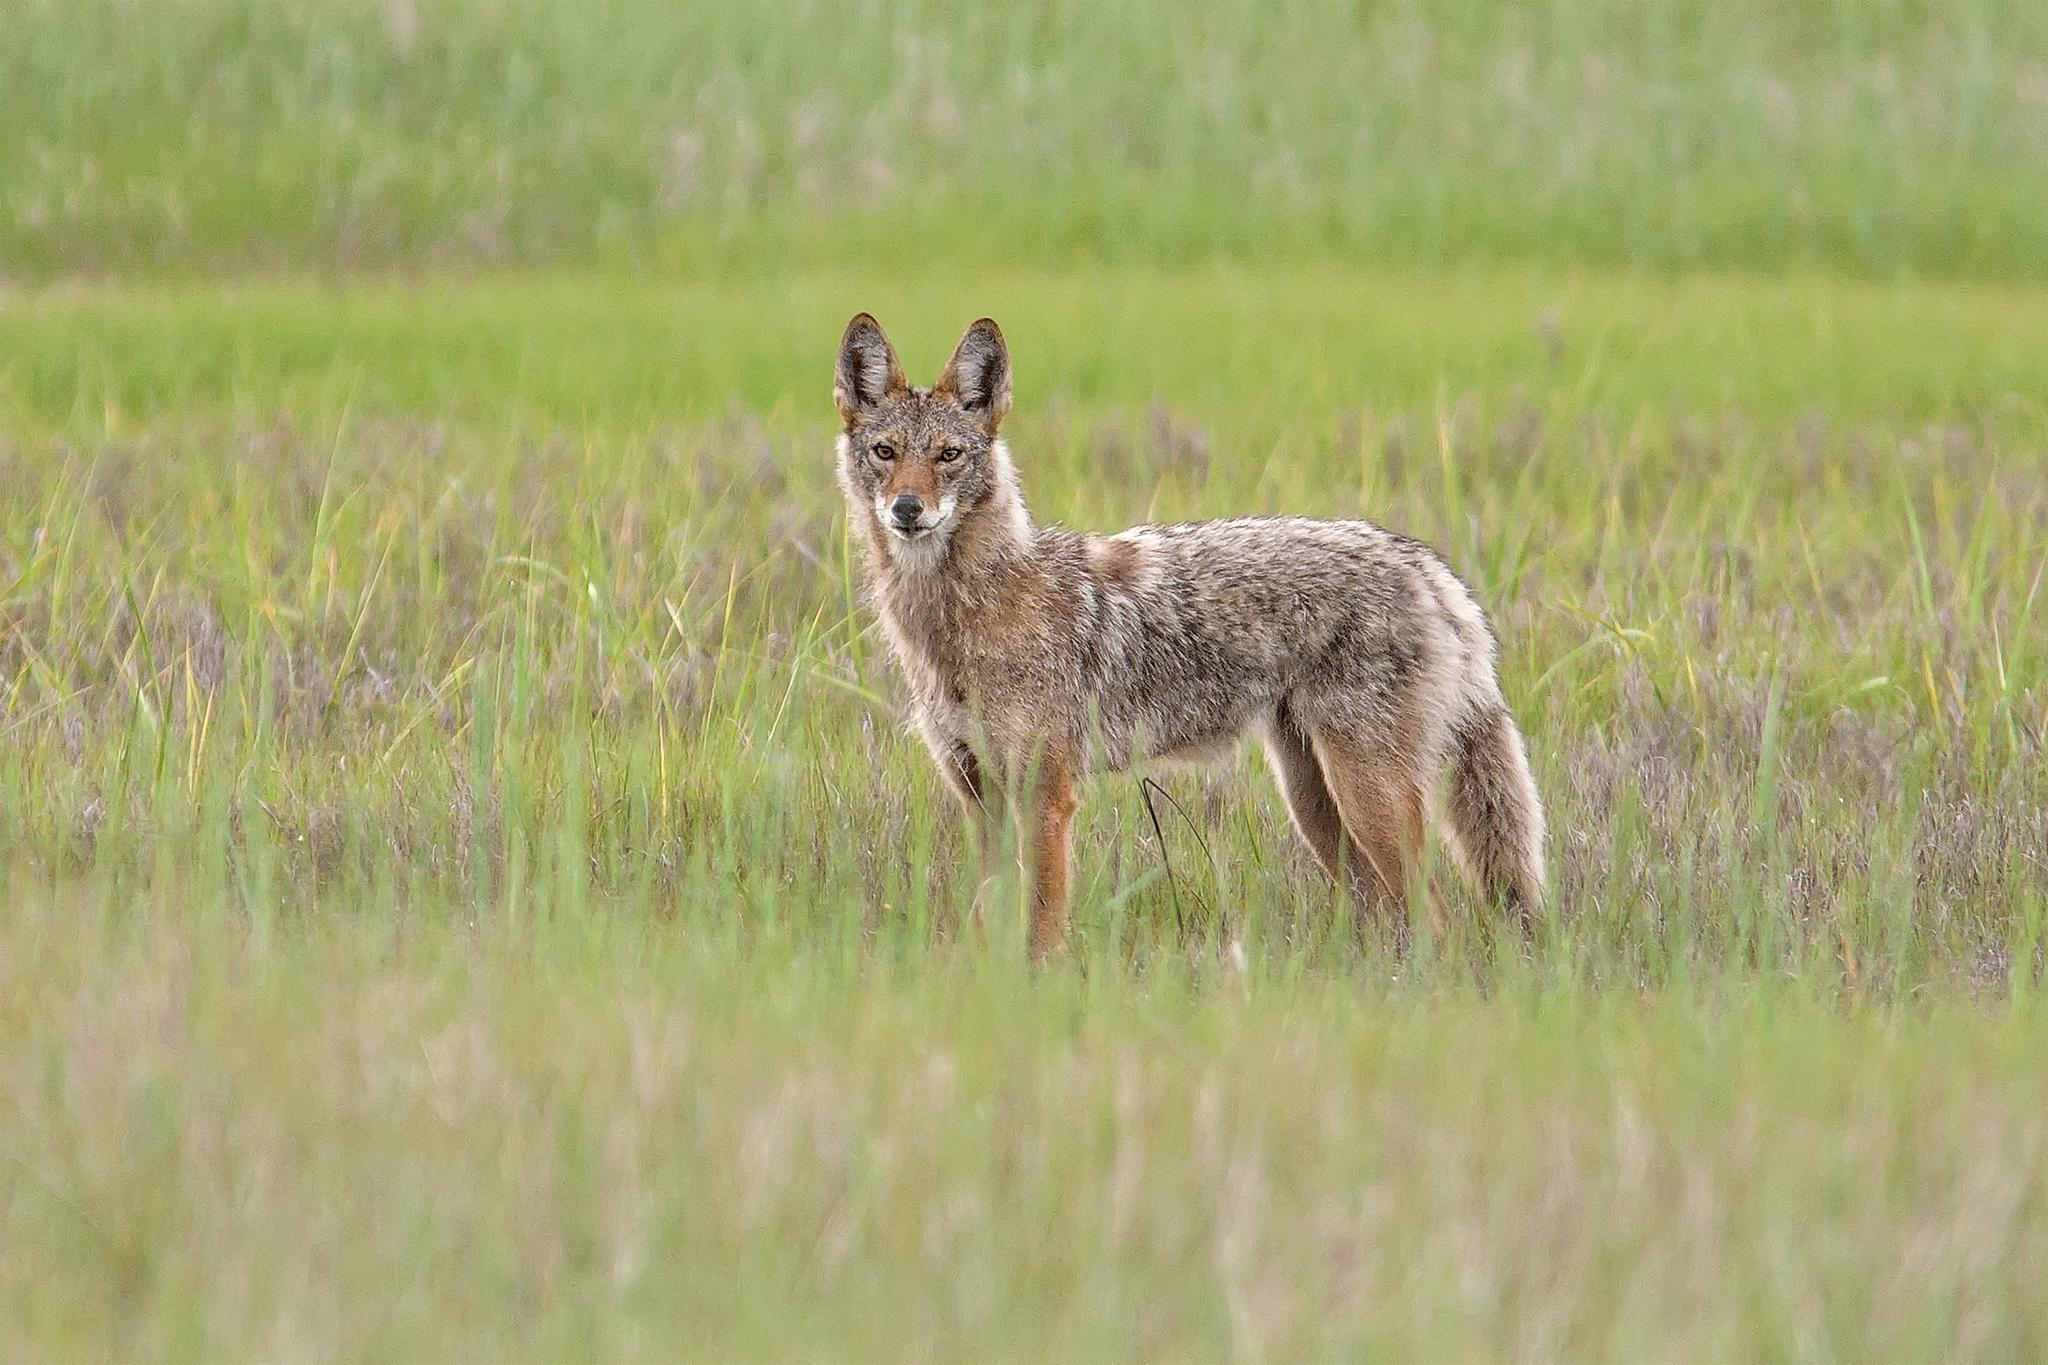 Wild Coyote (Canis latrans) by SylviaJFresson